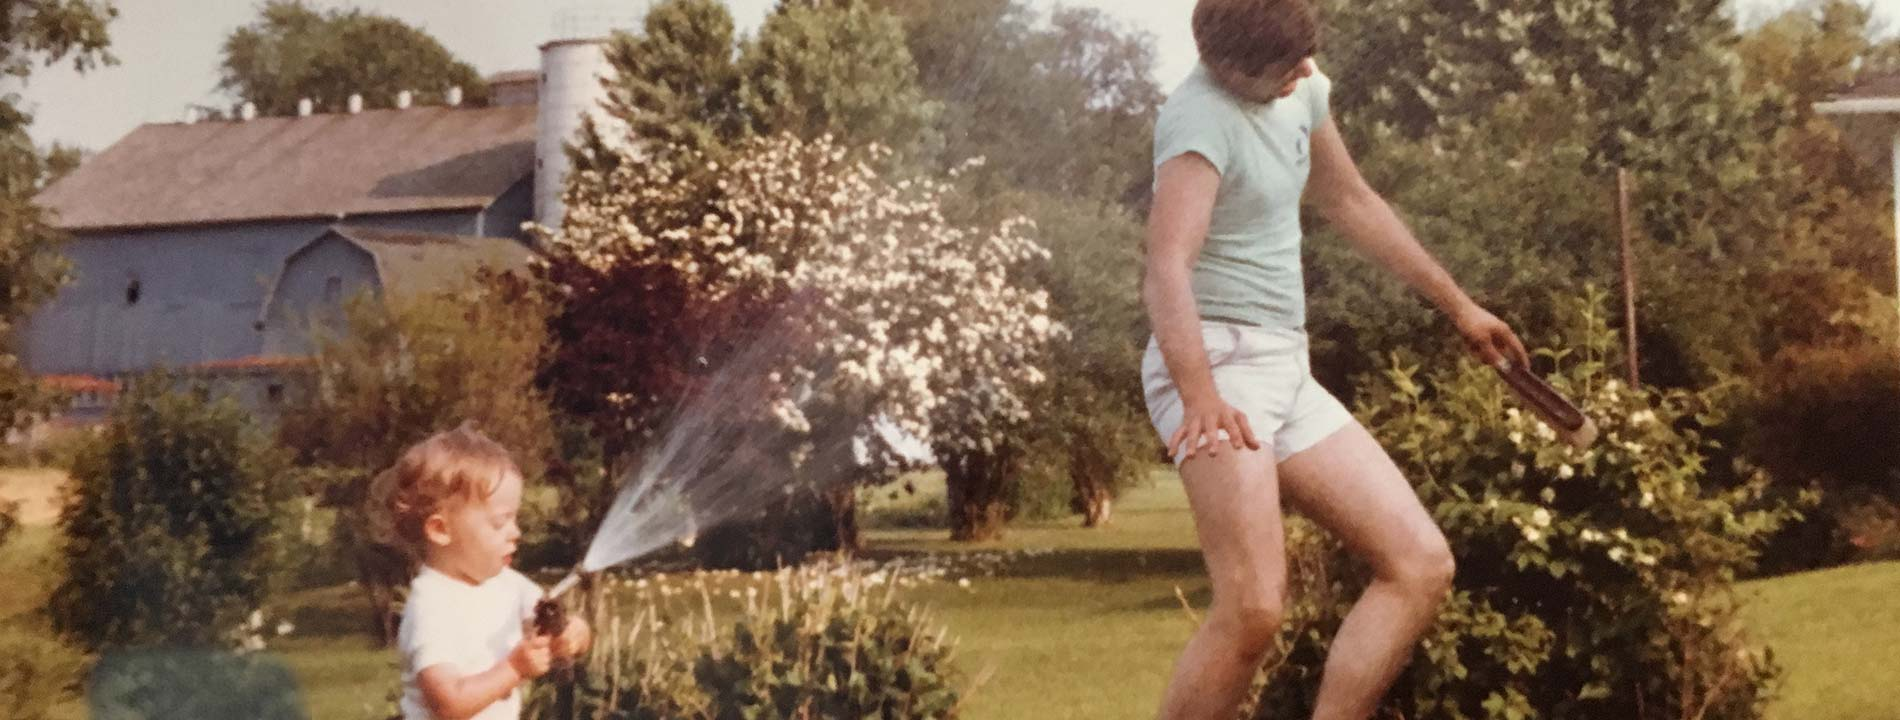 Young Ryan Martin spraying his dad with a water hose